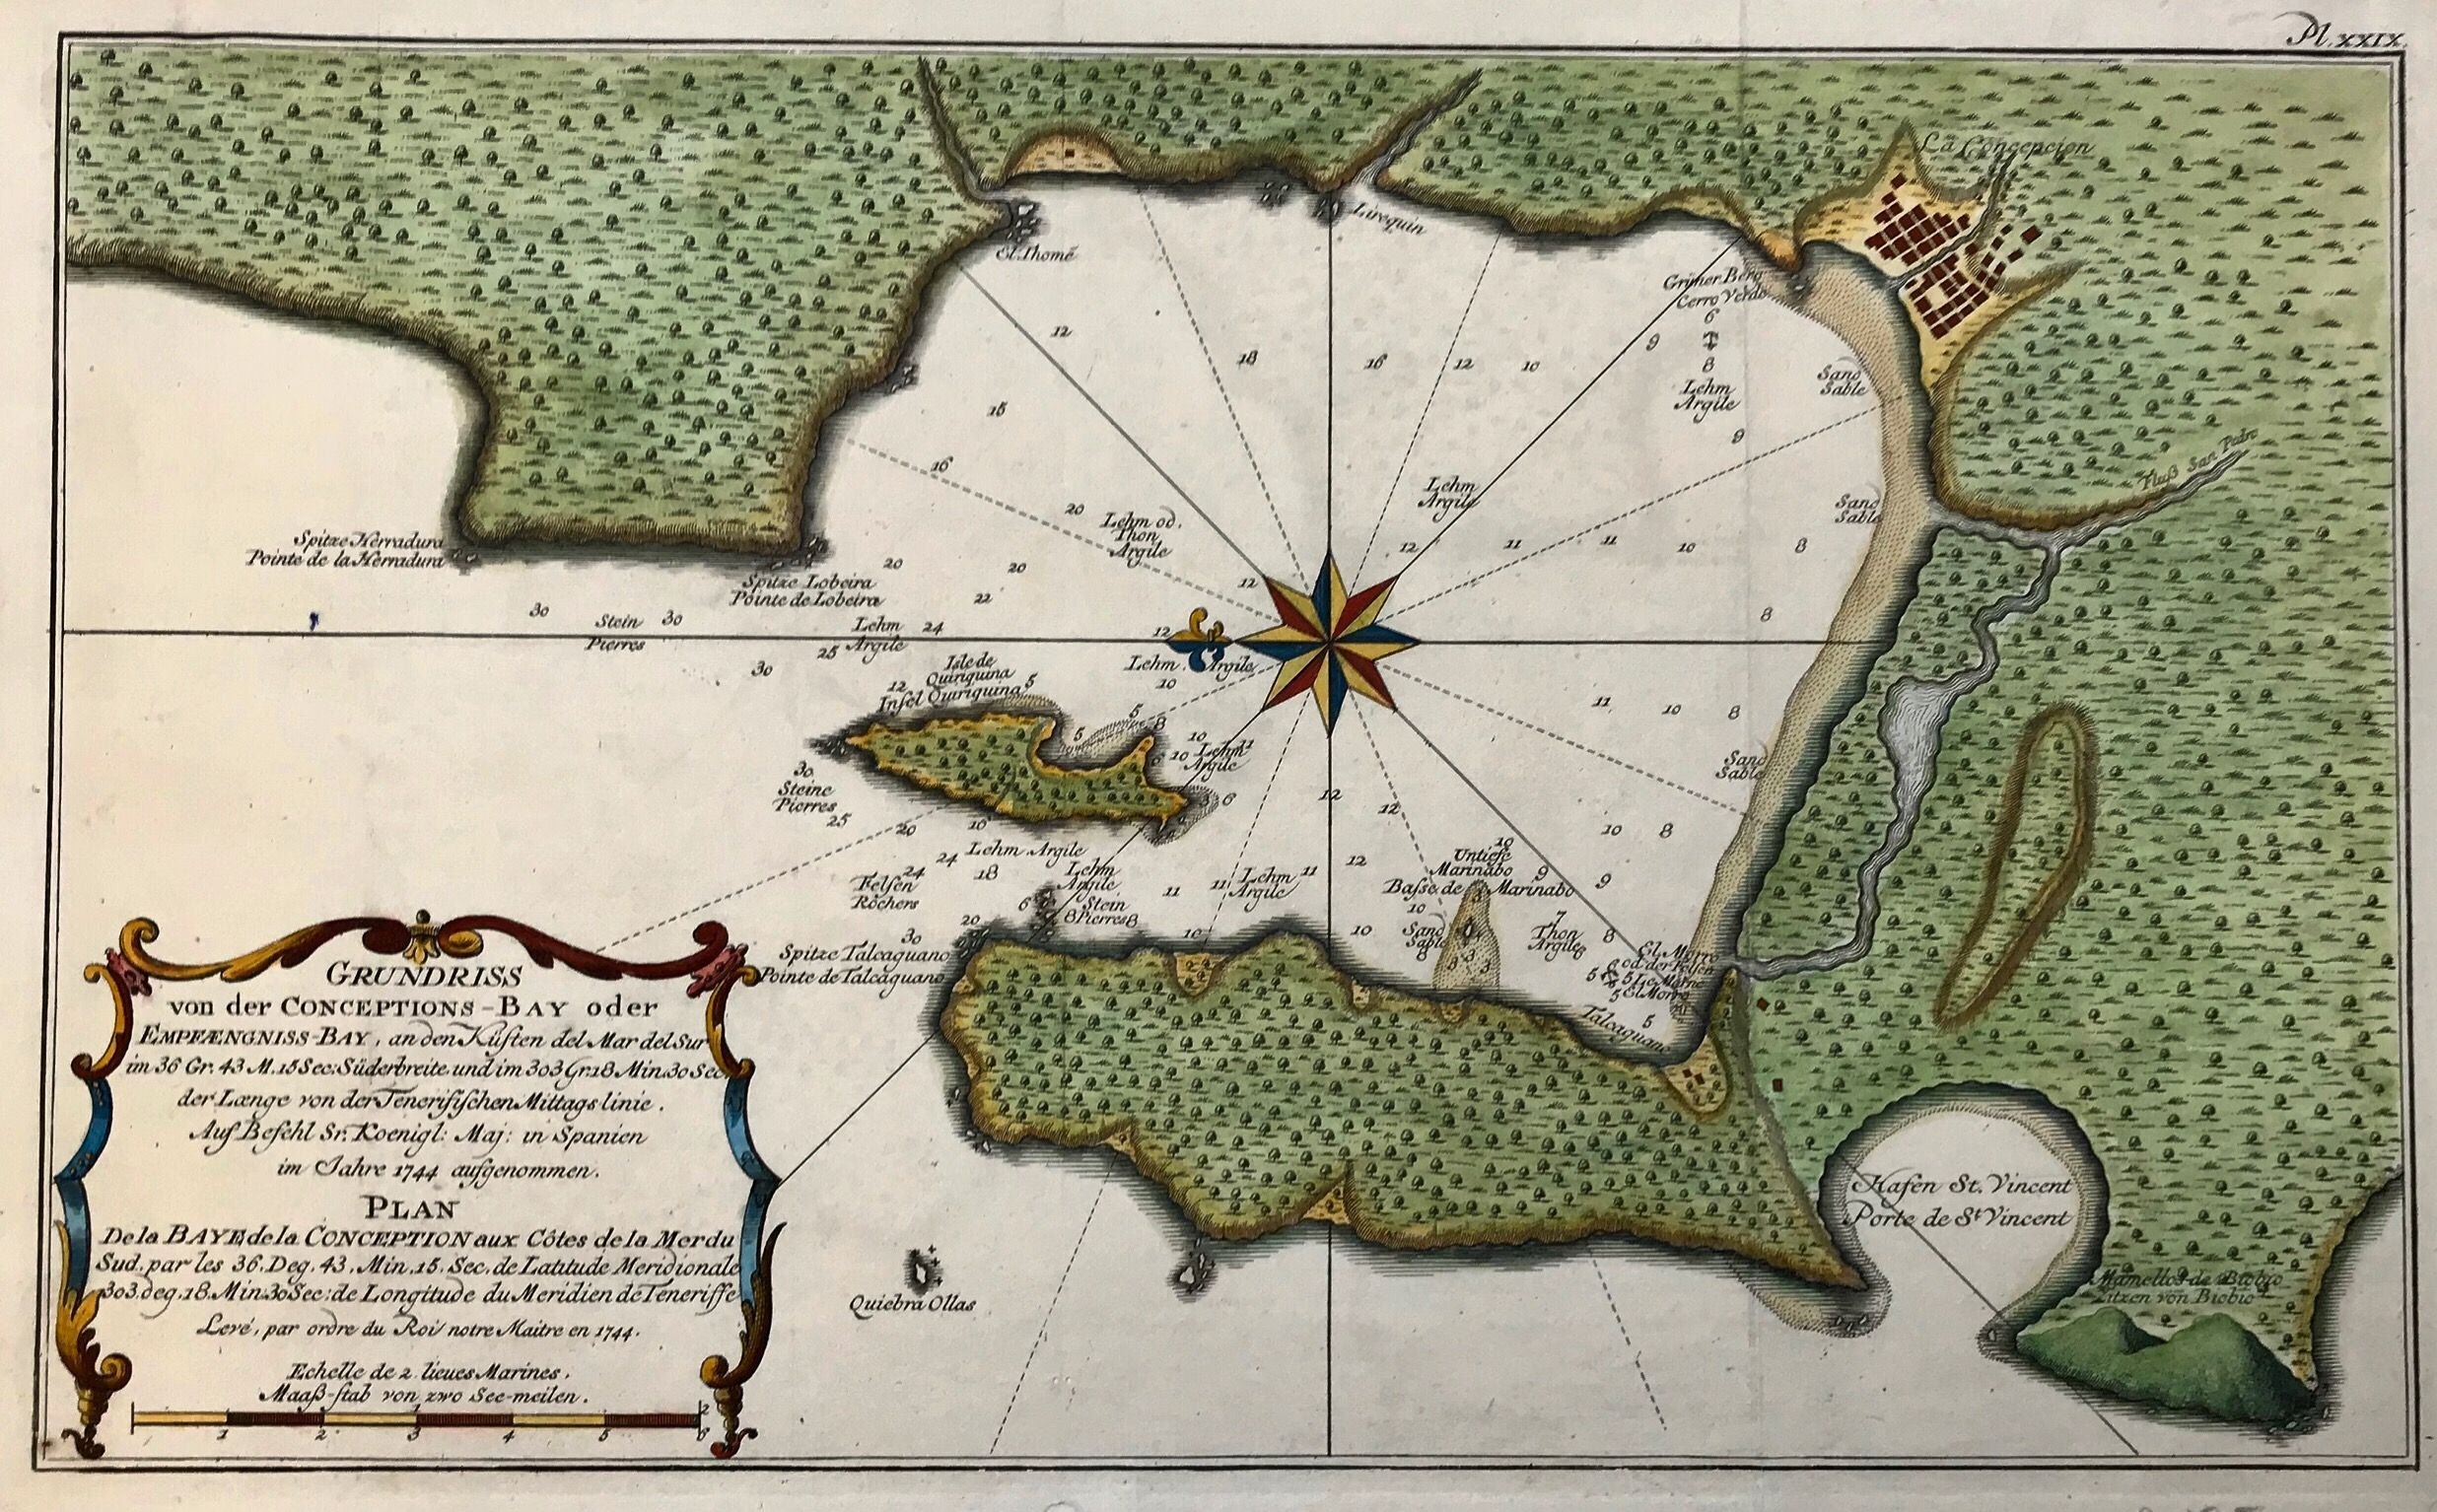 Antique And Rare Prints Map Of Concepcion Bay Chile Antique Maps Engraving Printing Map